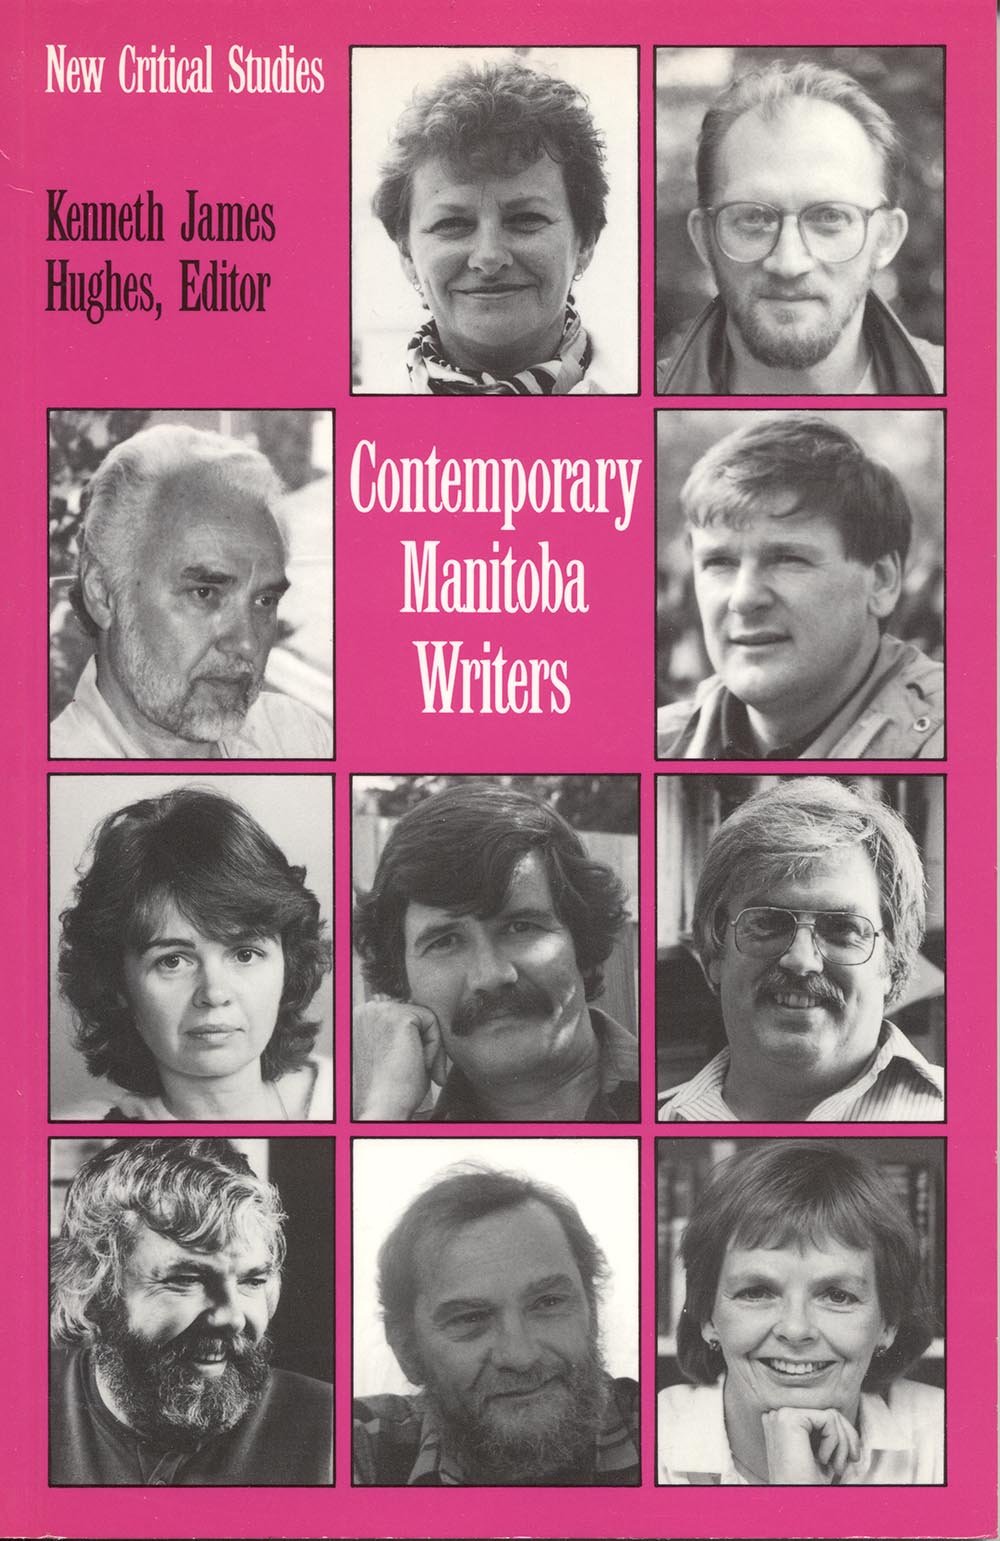 Contemporary Manitoba Writers edited by Kenneth Hughes